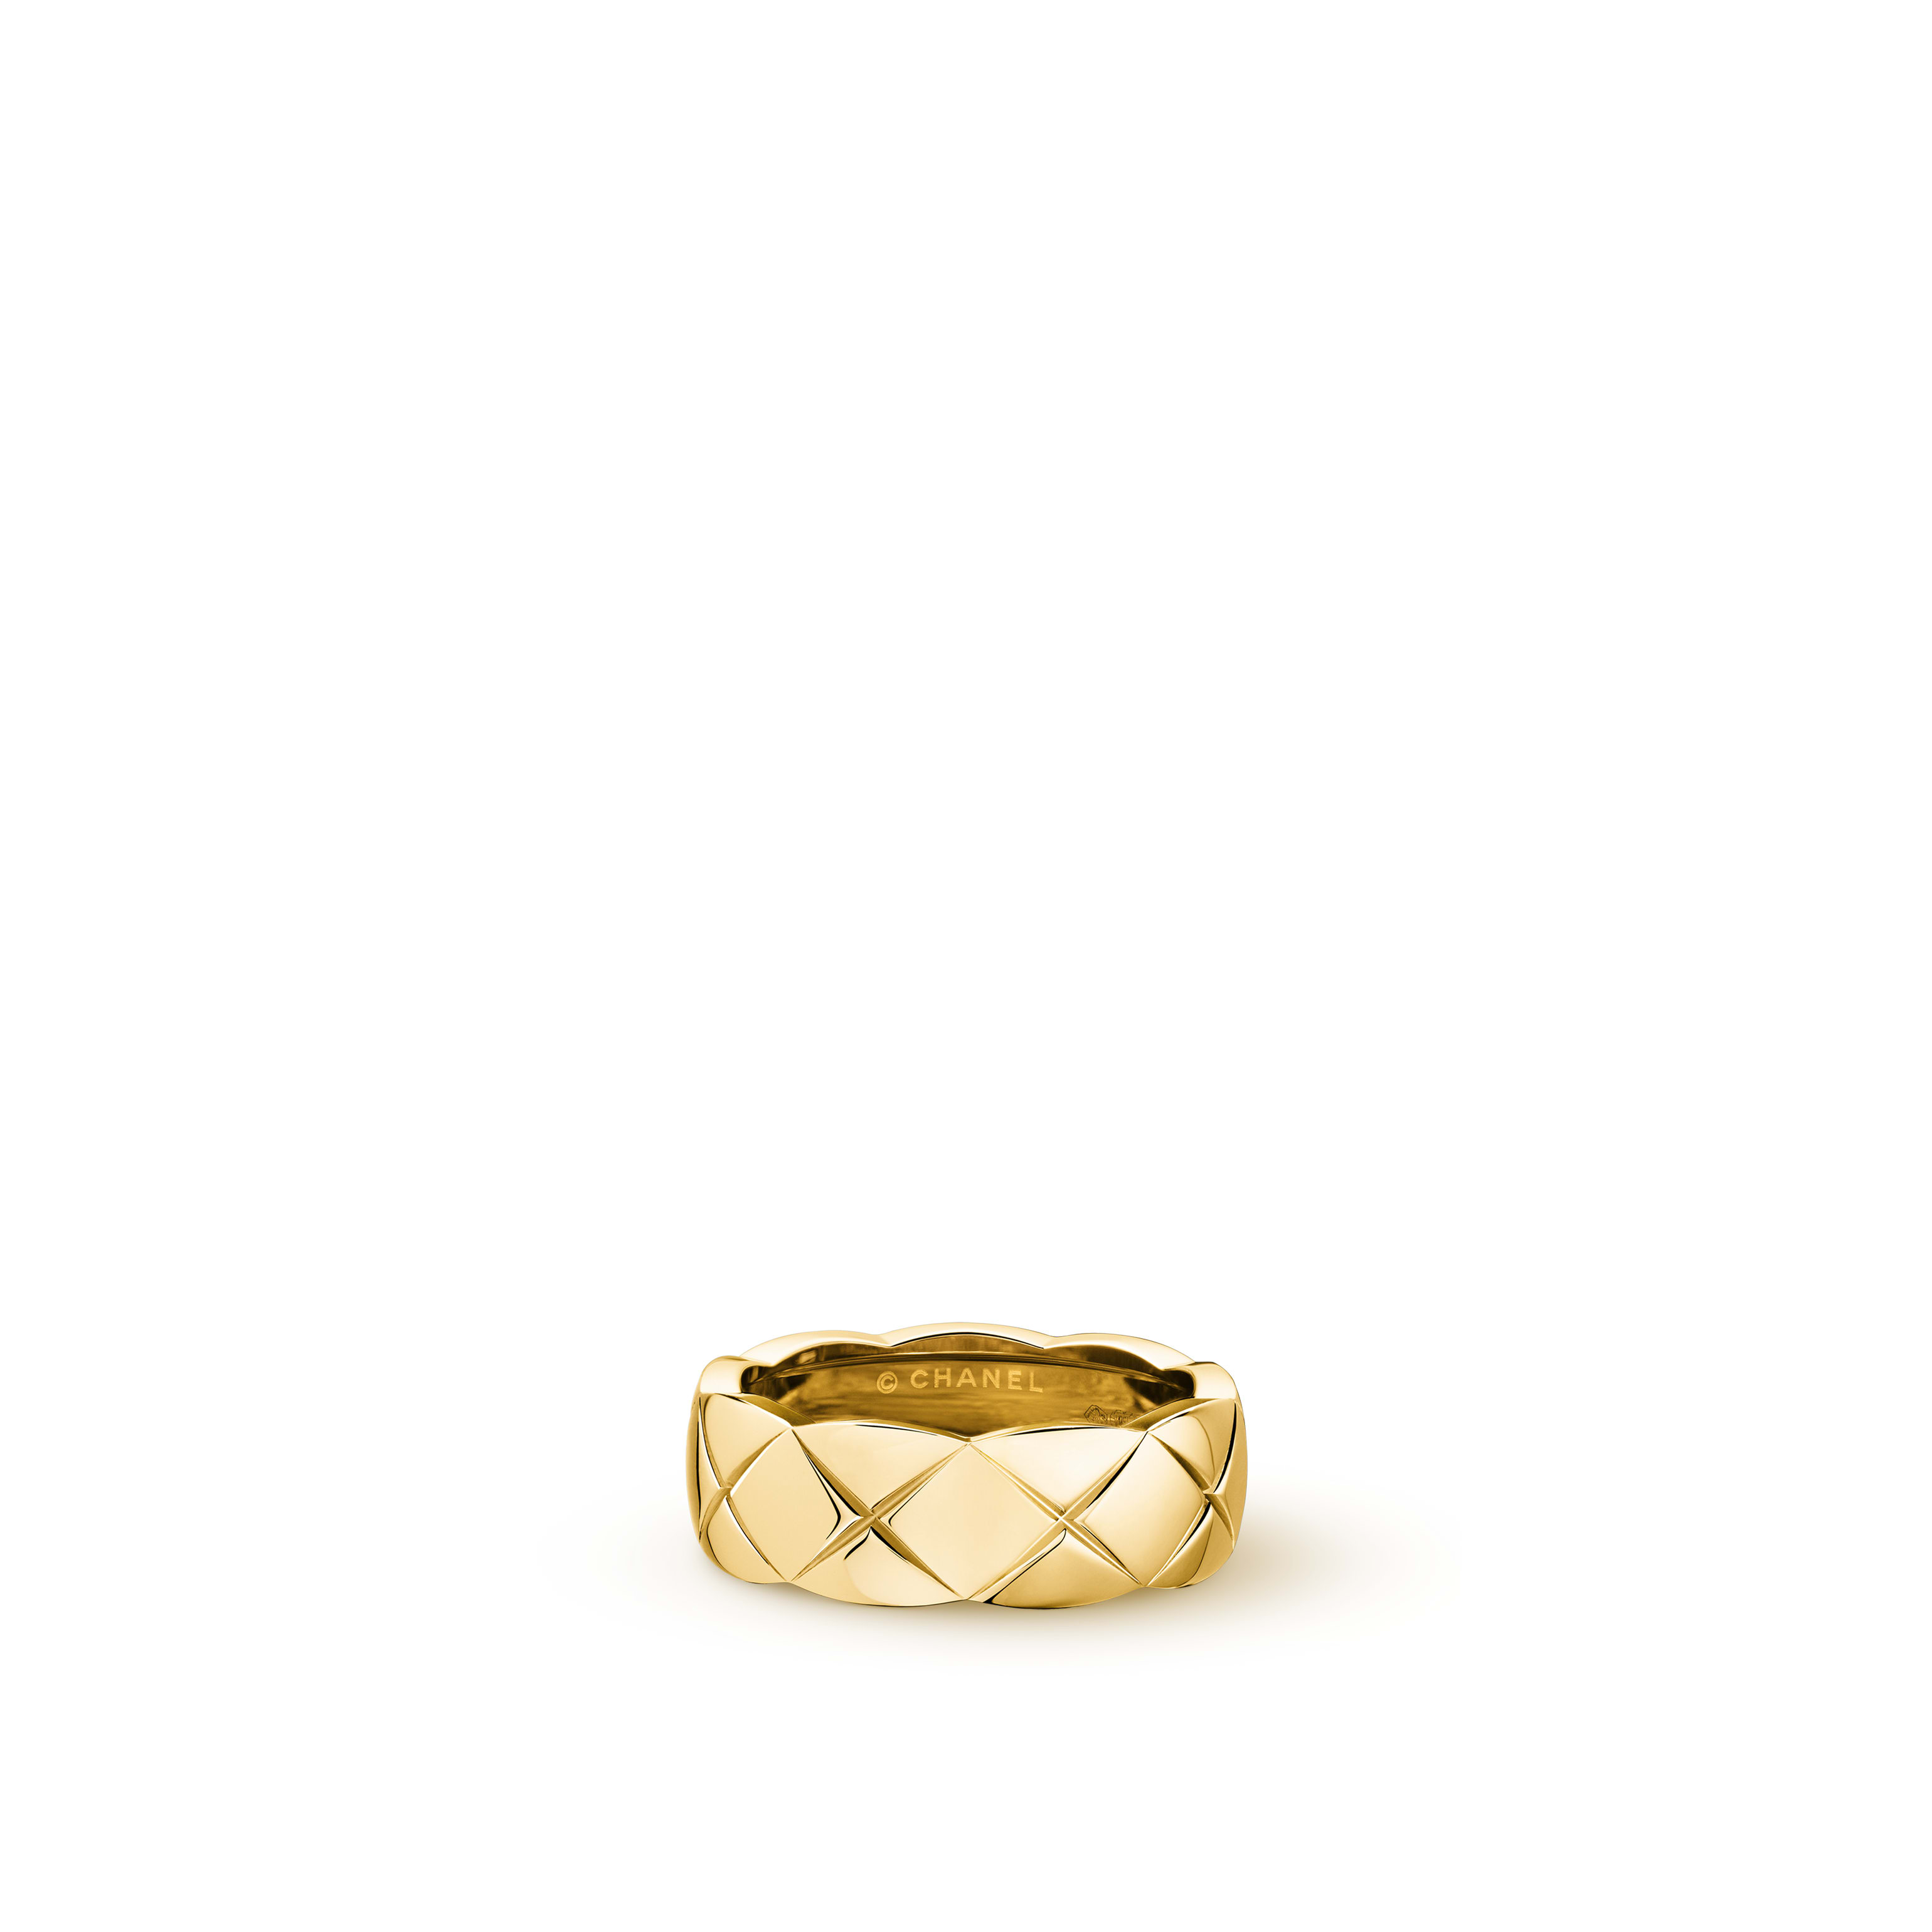 Coco Crush ring - Quilted motif, small version, 18K yellow gold - CHANEL - Default view - see standard sized version